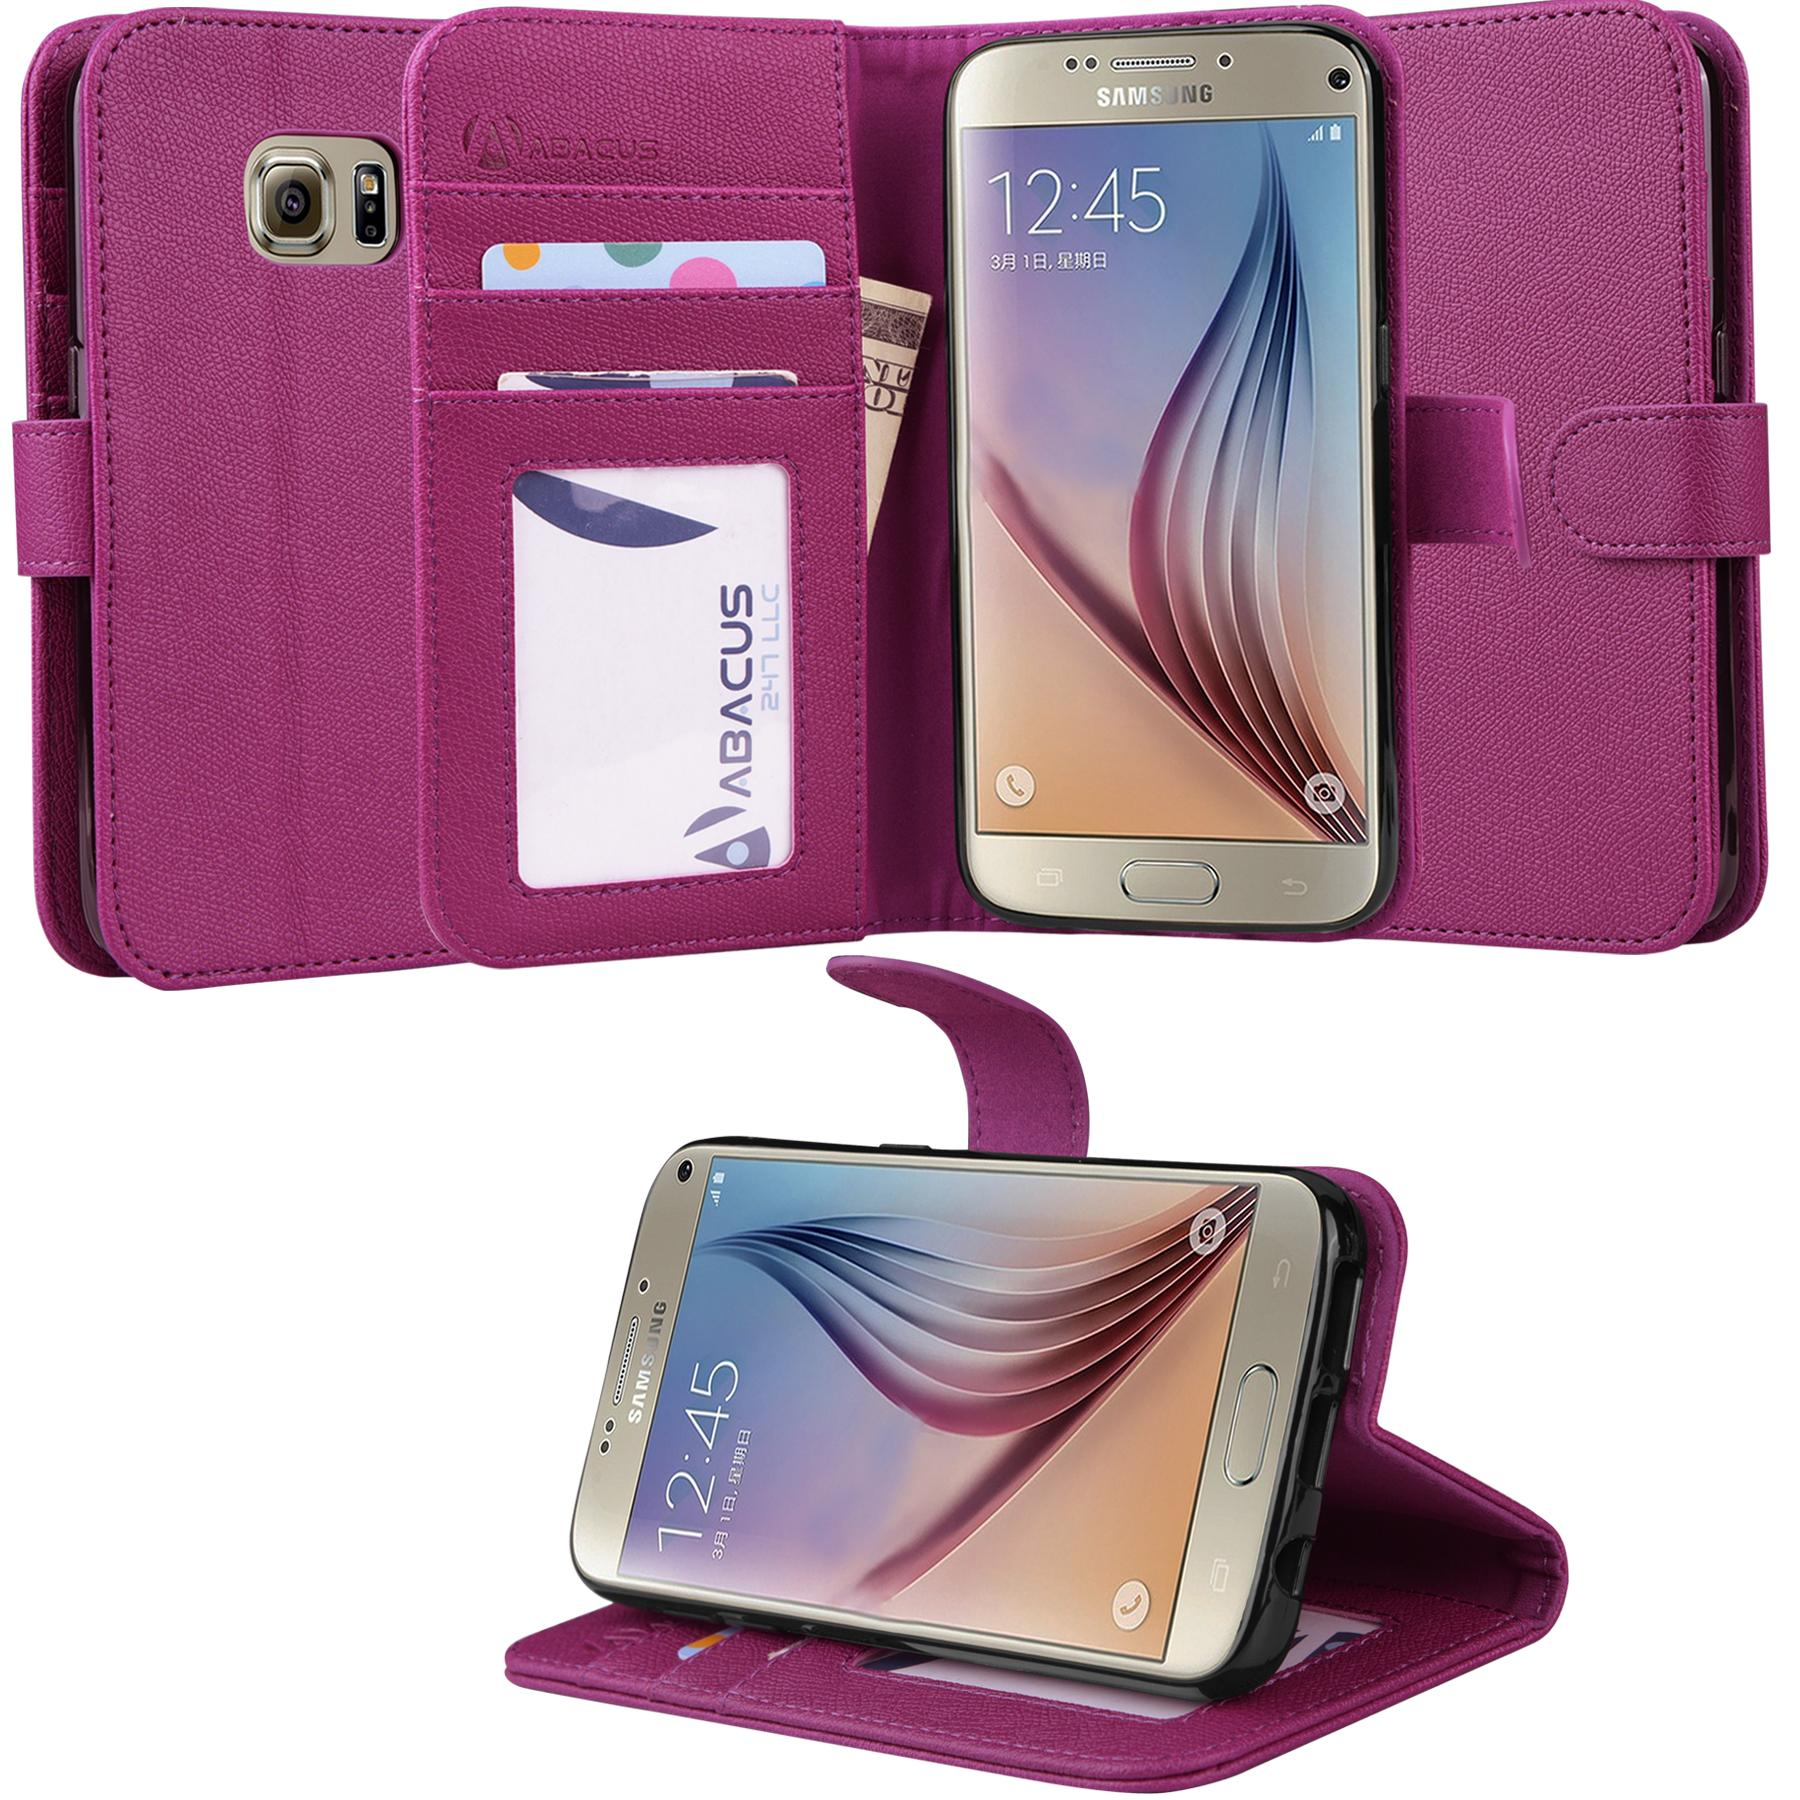 Abacus24-7 Galaxy S7 Case, Wallet with Flip Cover, Credit Card Holders & Stand, Purple